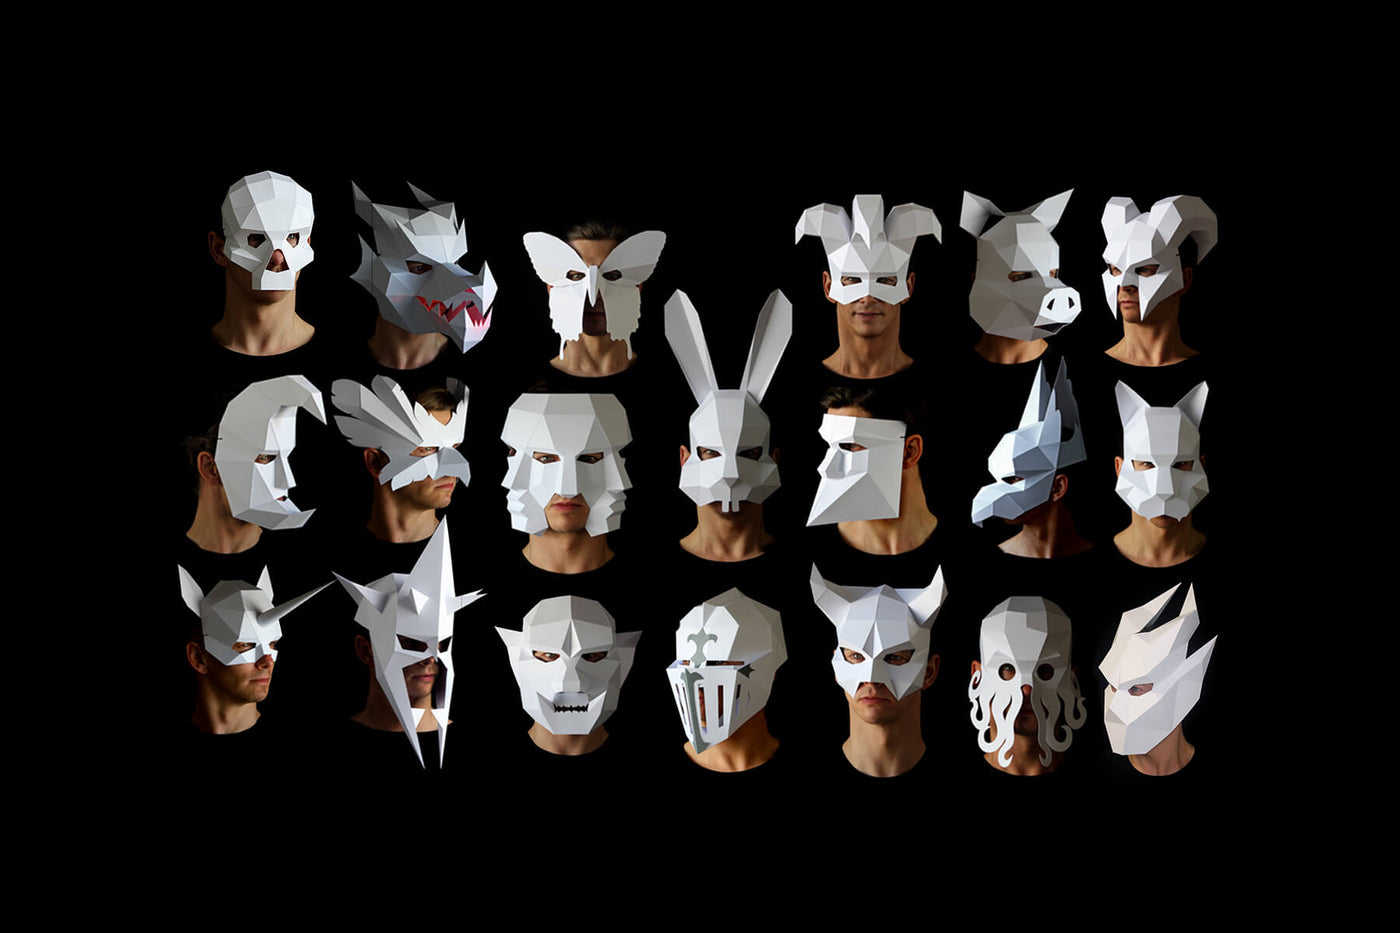 Papercraft Masks Templates to make your own DIY paper face masks. Designed by paper artist Kostas Ntanos, animal masks templates for making low-poly papercraft masks. Download DIY geometric papercraft mask templates for Halloween.